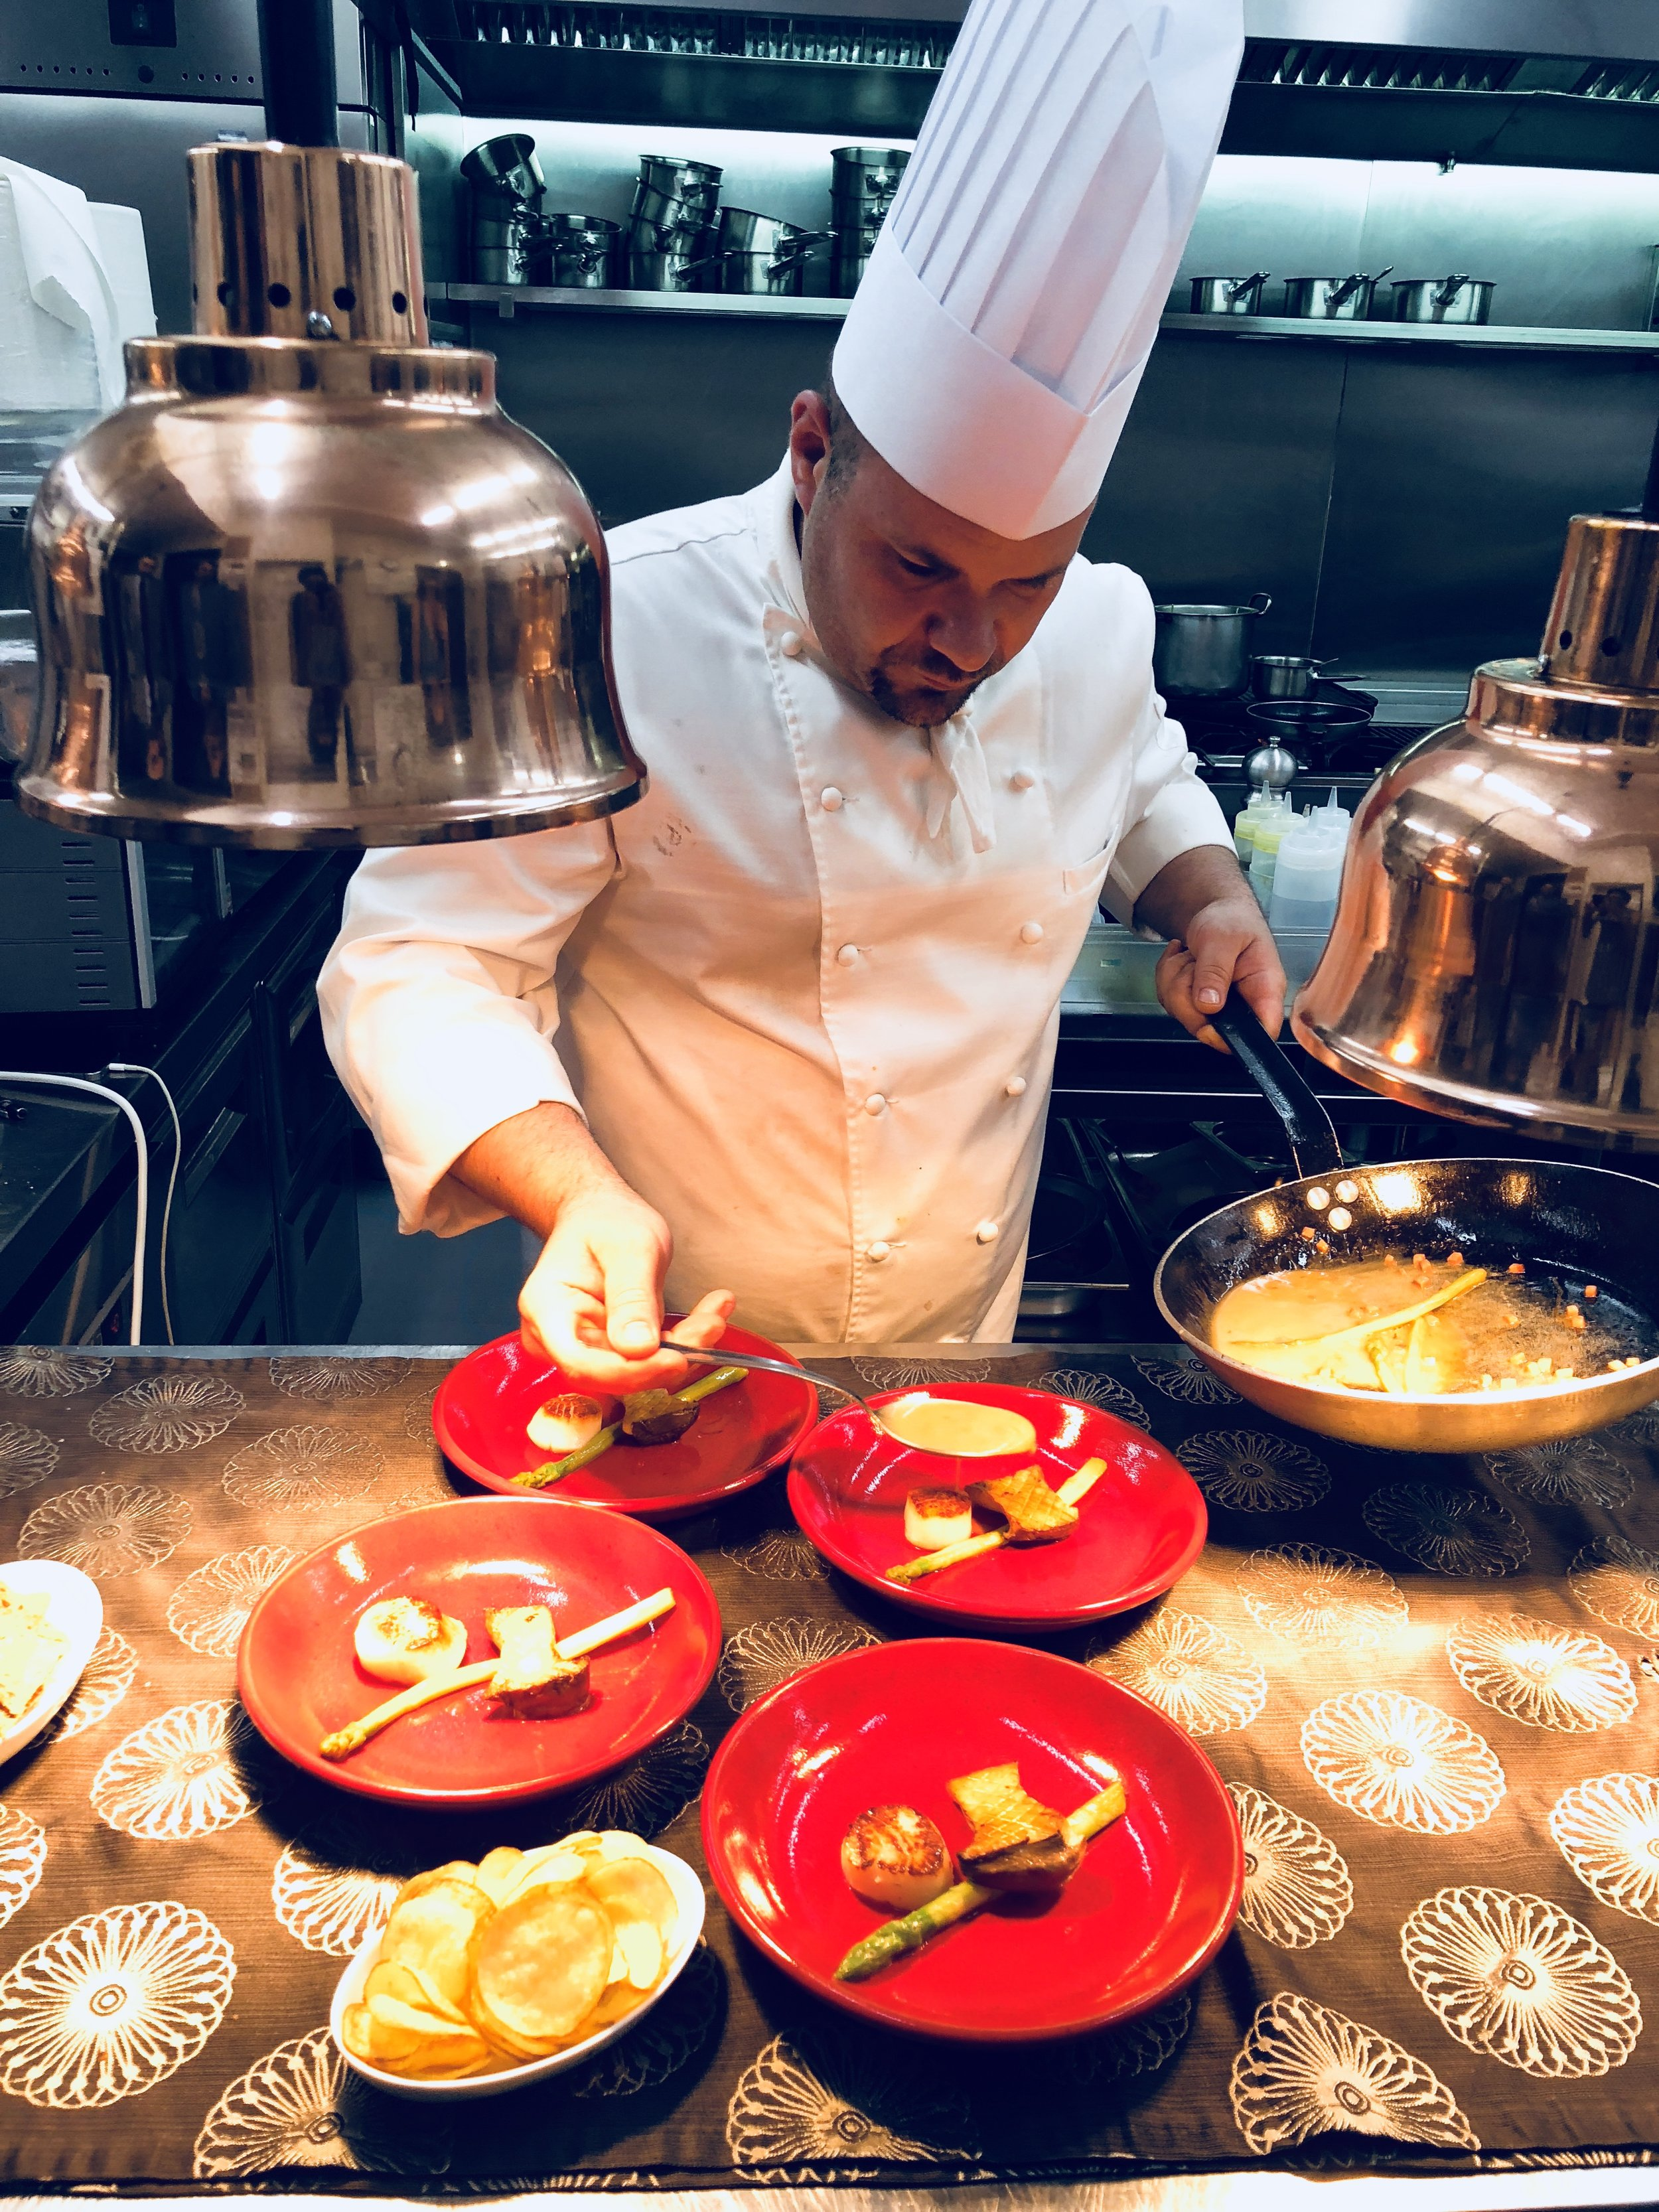 Inside the kitchen at Pabe